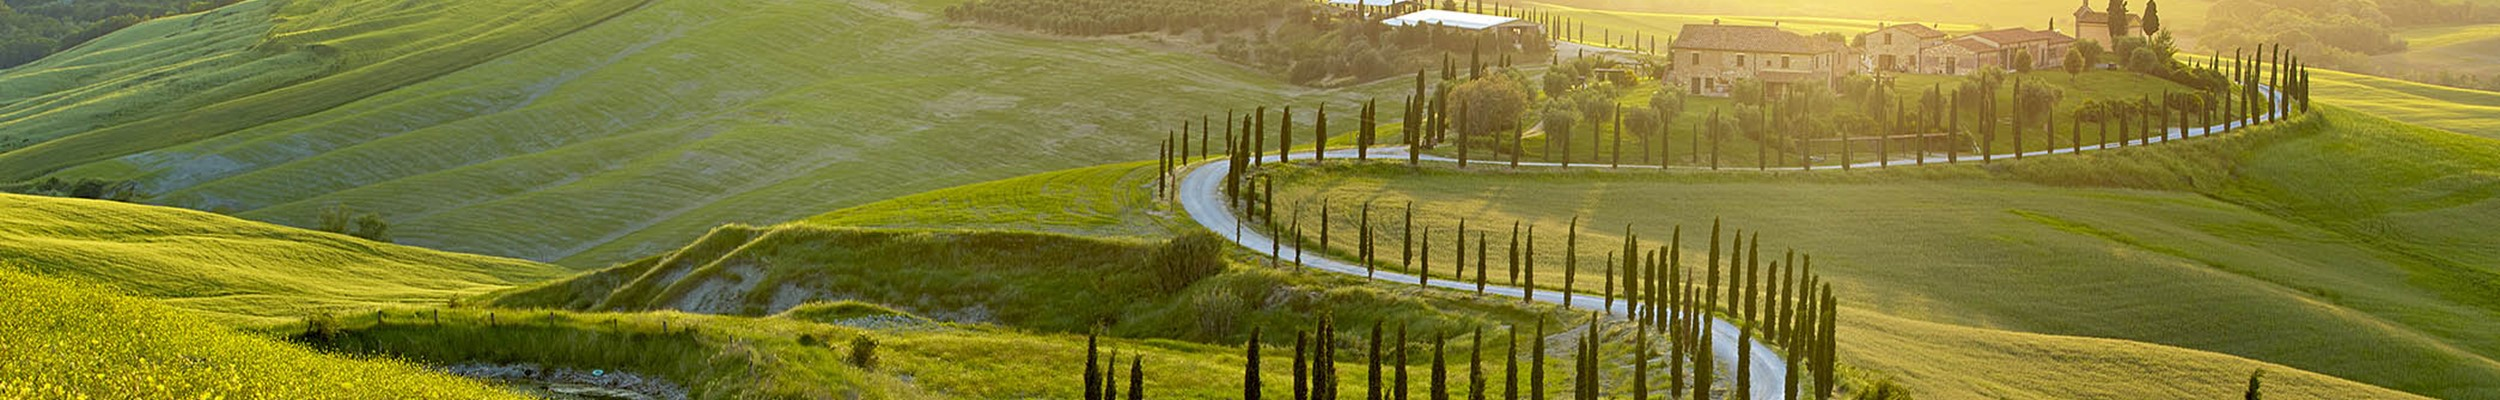 Winding roads in Italian countryside